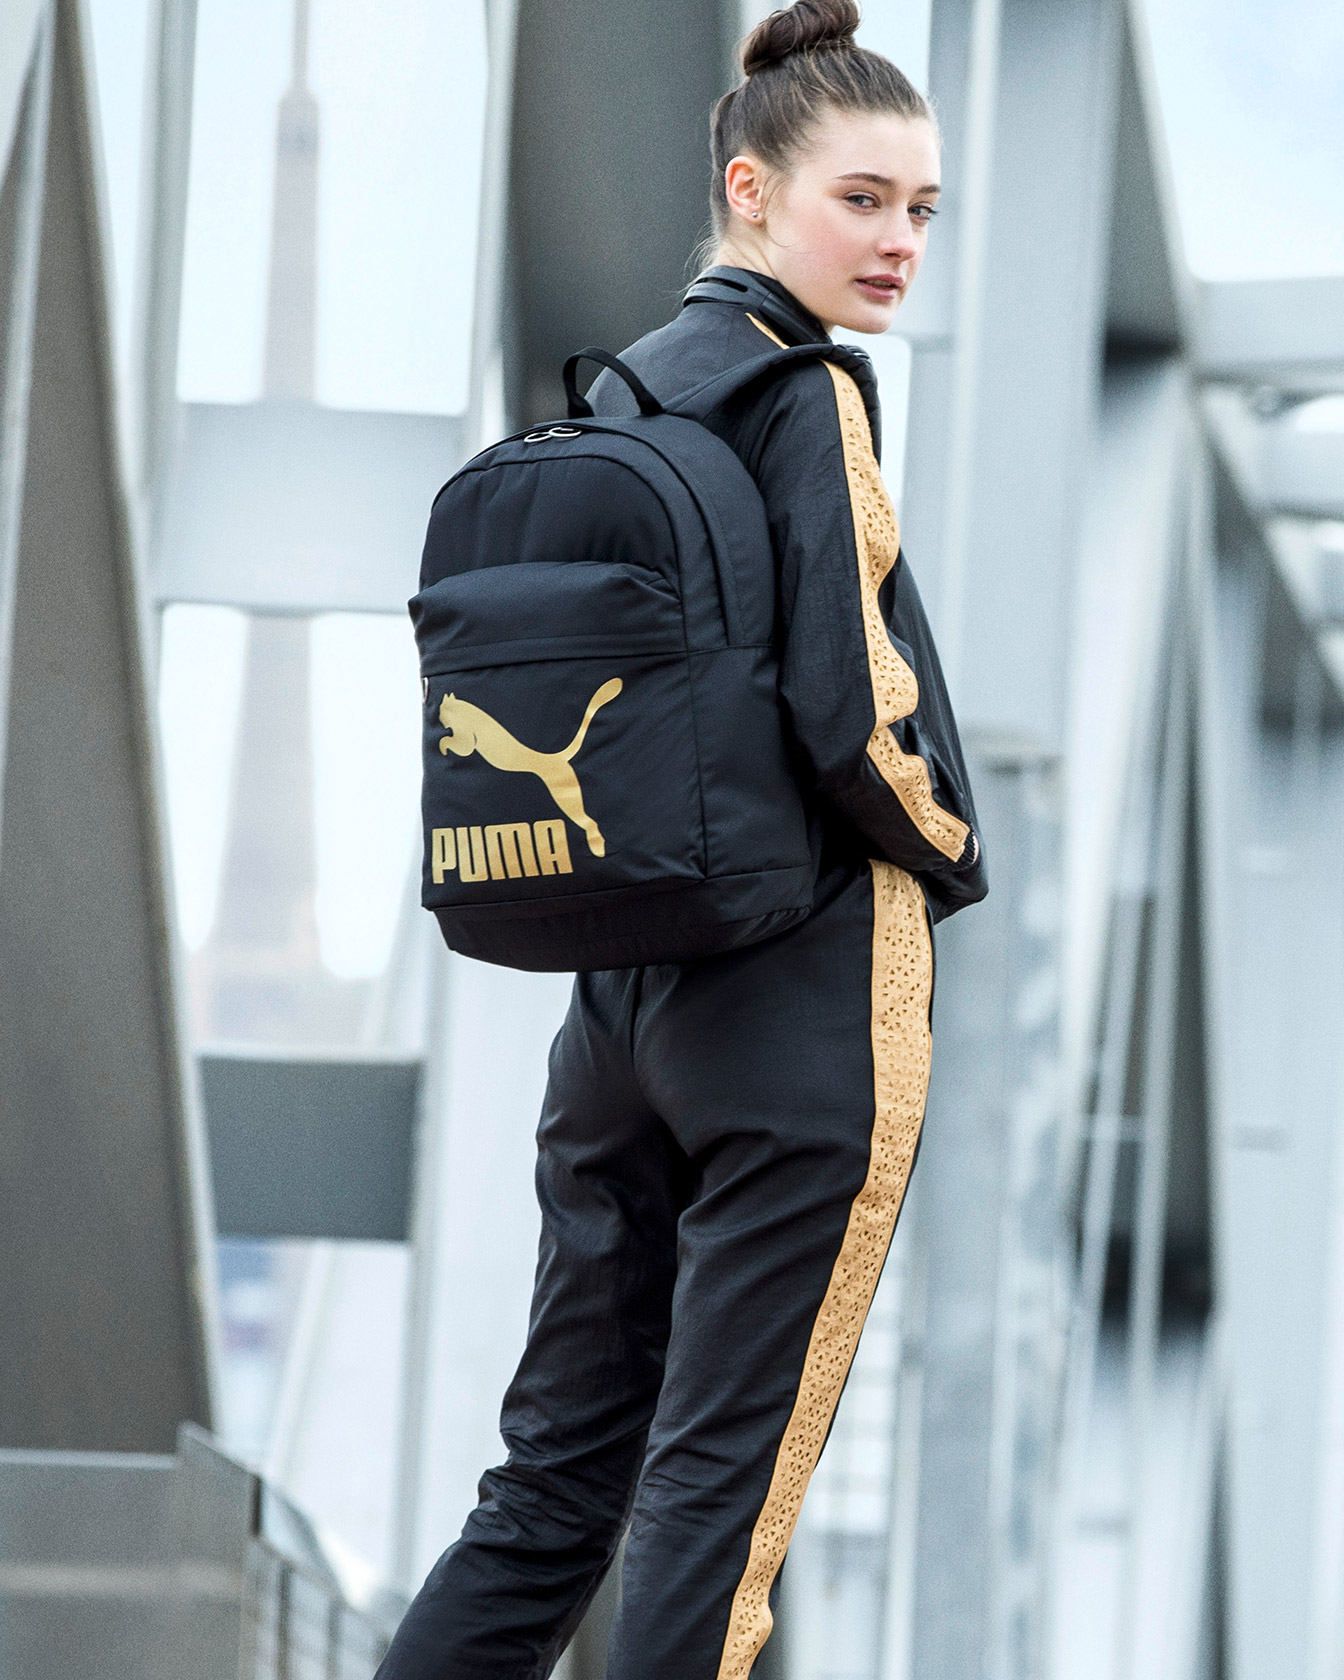 Female Model with PUMA Backpack